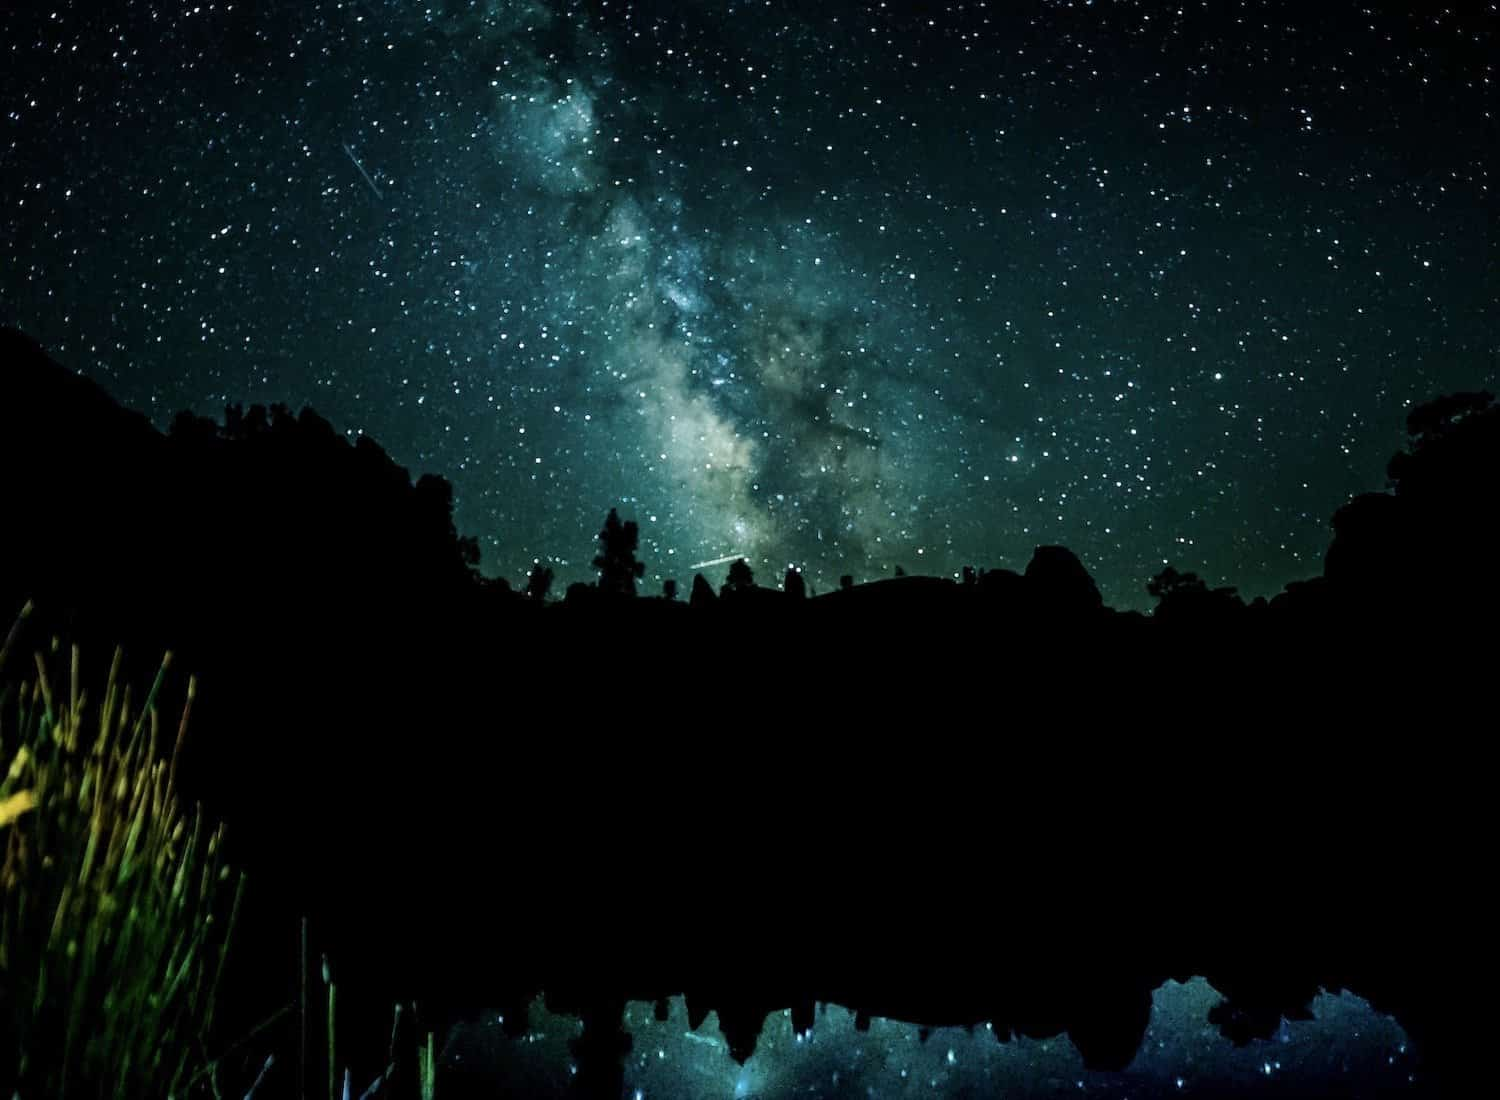 Best National Parks for Stargazing - Pinnacles - Shelly Prevost via Flickr